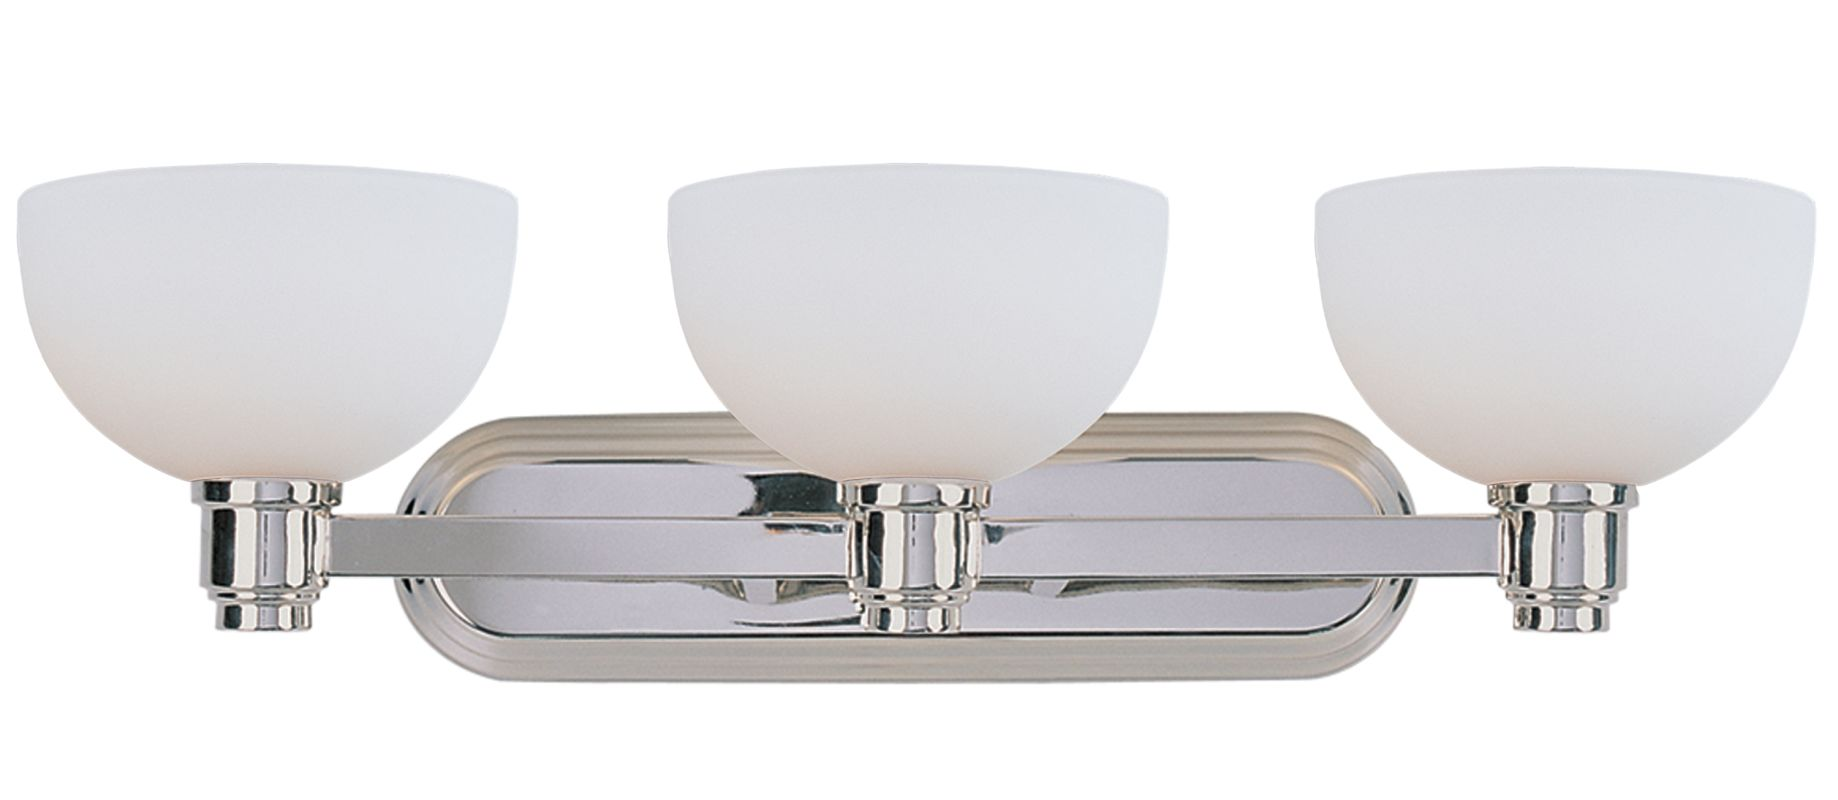 Z-Lite 314-3V Chelsey 3 Light Bathroom Vanity Light with White Swirl Sale $216.00 ITEM: bci1824892 ID#:314-3V-CH UPC: 685659008937 :